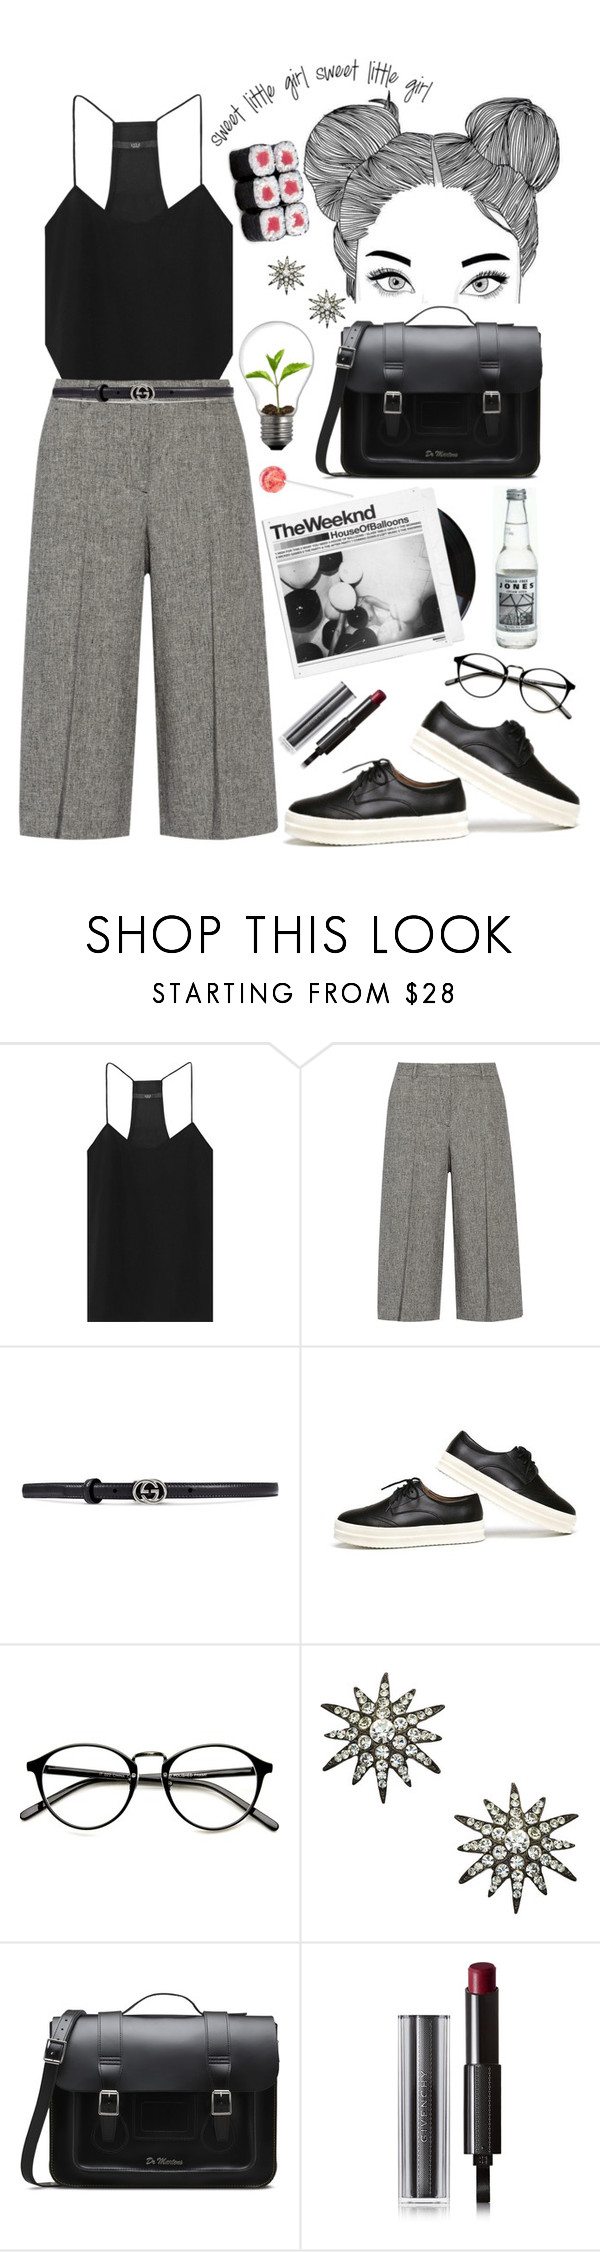 """"""""""" by lucielux ❤ liked on Polyvore featuring TIBI, Theory, Gucci, Yochi, Dr. Martens, Givenchy, vintage, GetTheLook, TrickyTrend and culottes"""